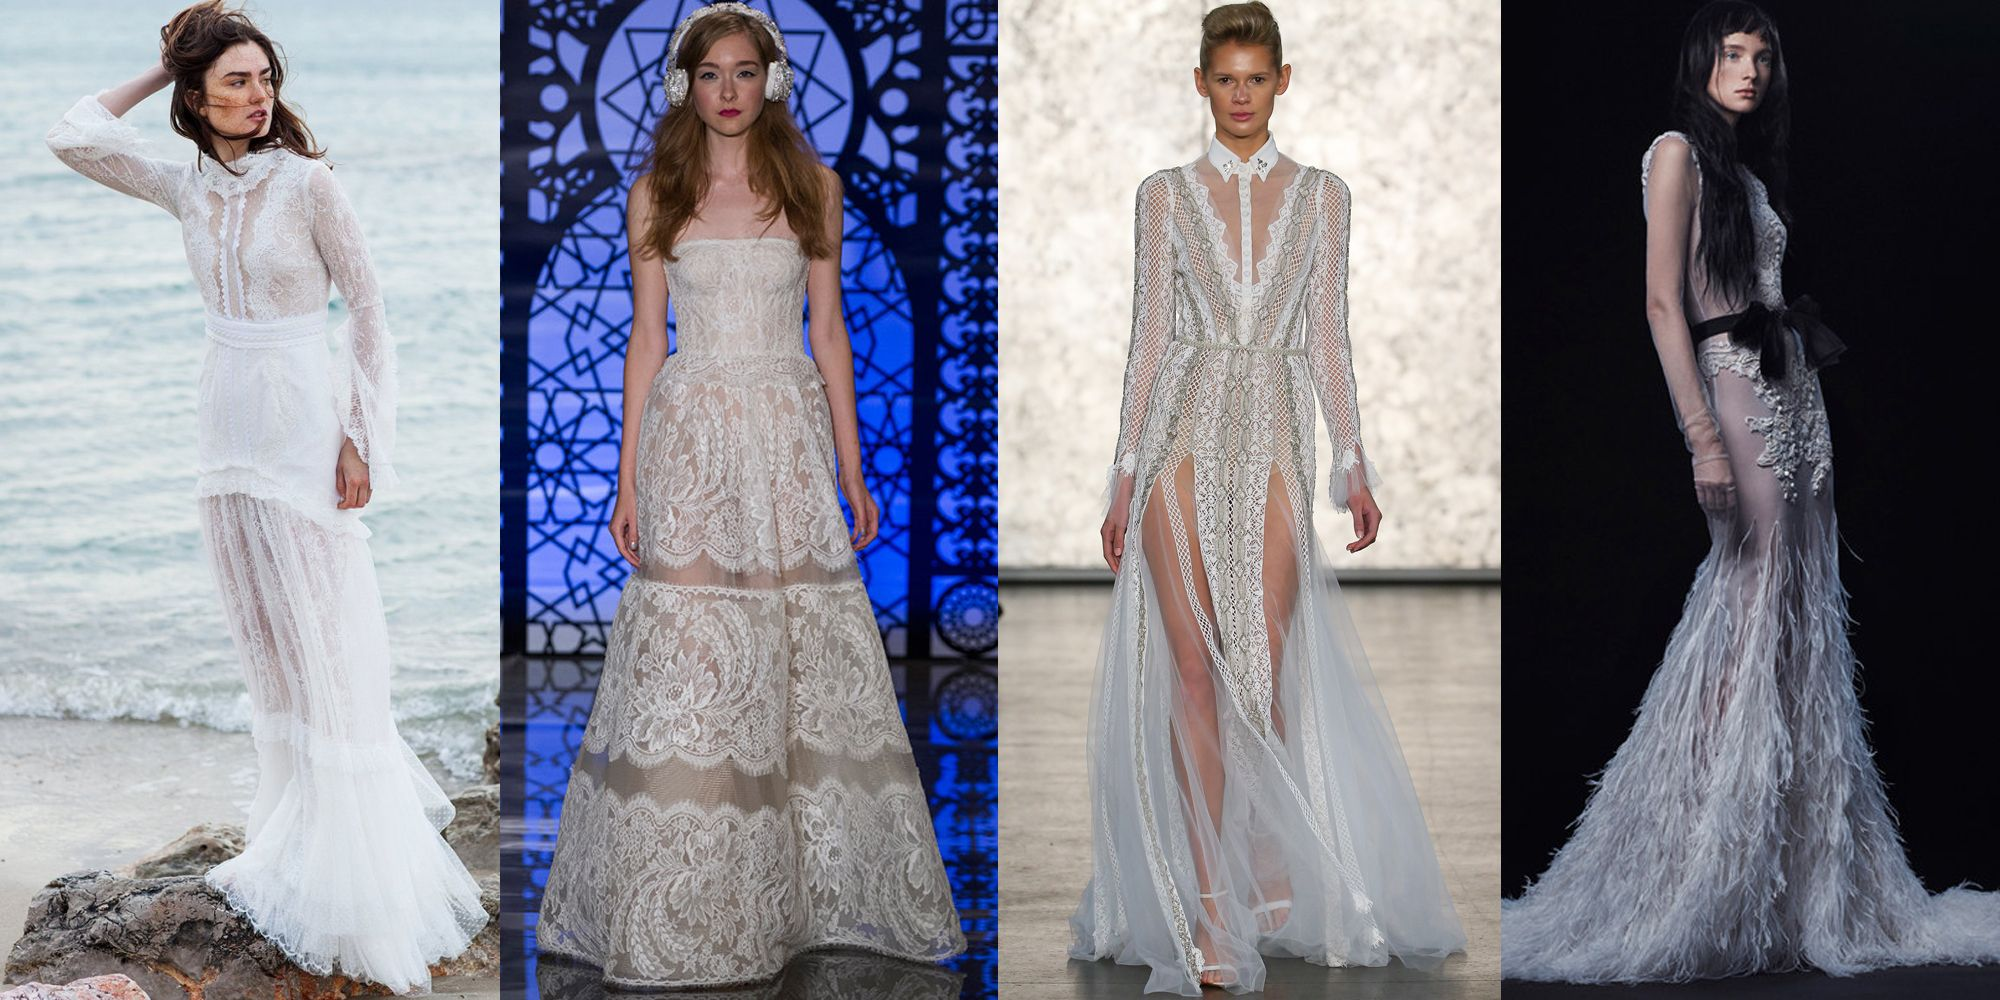 "<p>Peekaboo panels, sheer slits and allover illusion dominated the Fall 2019 bridal runways, and most of the standouts showed off long legs and toned arms without feeling too bare for bridal. Strategically placed tulle, lace and gossamer mesh made all-covered up styles feel weightless, and see-through skirts are the best way to show off killer heels.</p><p><em><a href=""http://www.costarellos.gr/"">Christos Costarellos</a> 2019 Collection; <a href=""http://www.reemacra.com/Collections/Bridal#2"">Reem Acra</a> Fall 2019; <a href=""http://www.inbaldror.co.il/en"">Inbal Dror</a> 2019 Collection; <a href=""http://www.verawang.com/EN/wedding/bridal-collection/fall-2016/3016-patrizia-1"">Vera Wang Bride</a> Fall 2019.</em></p>"